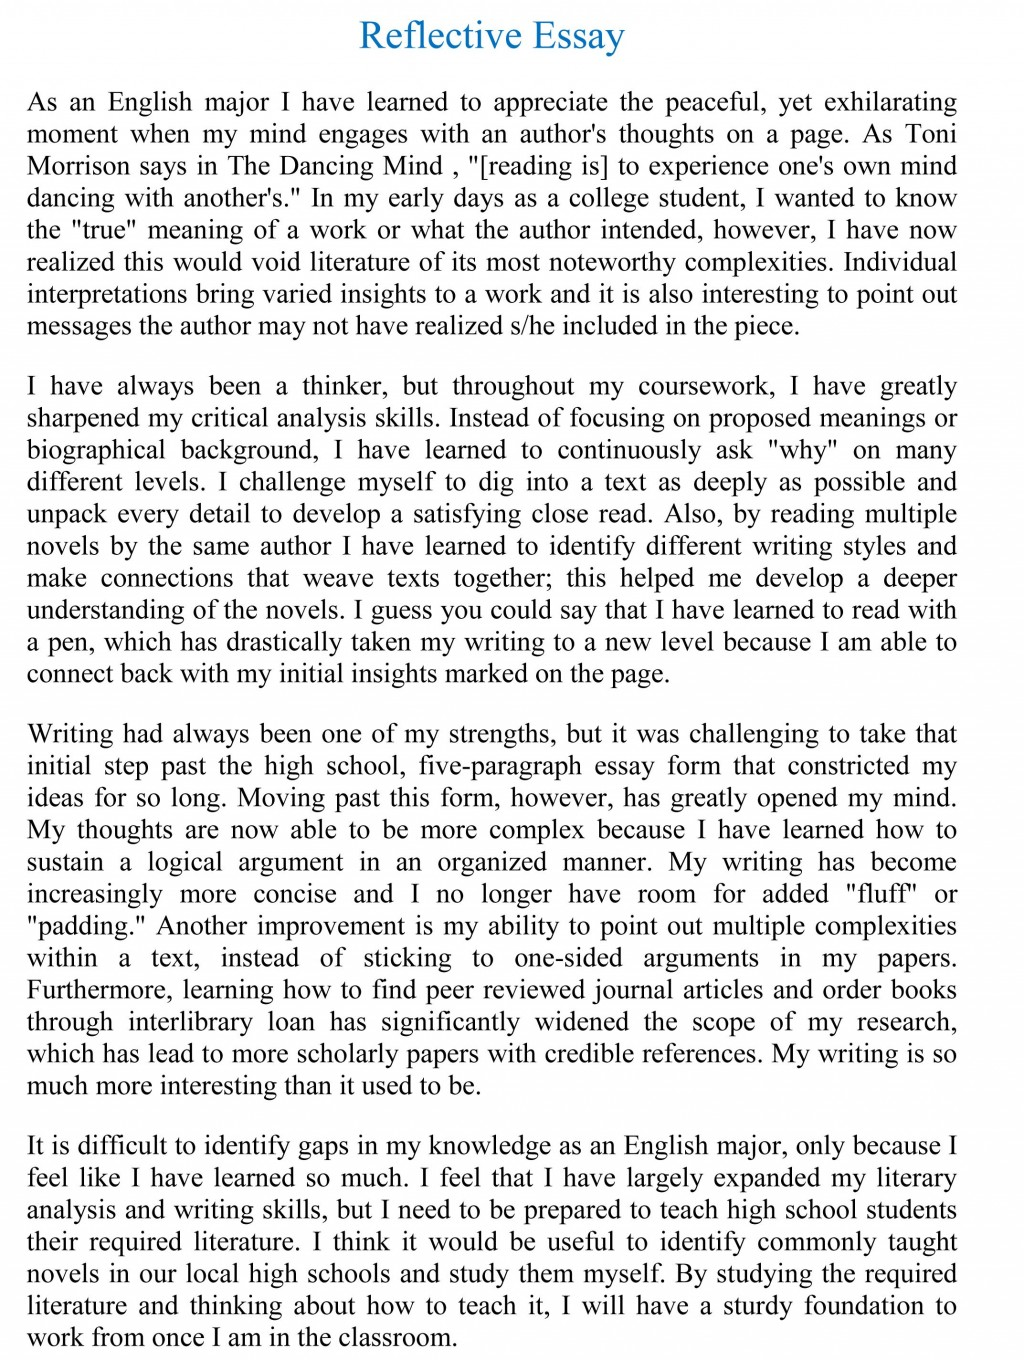 003 Reflective Essay Sample Example How To Marvelous Write A Introduction On Book Do You Large